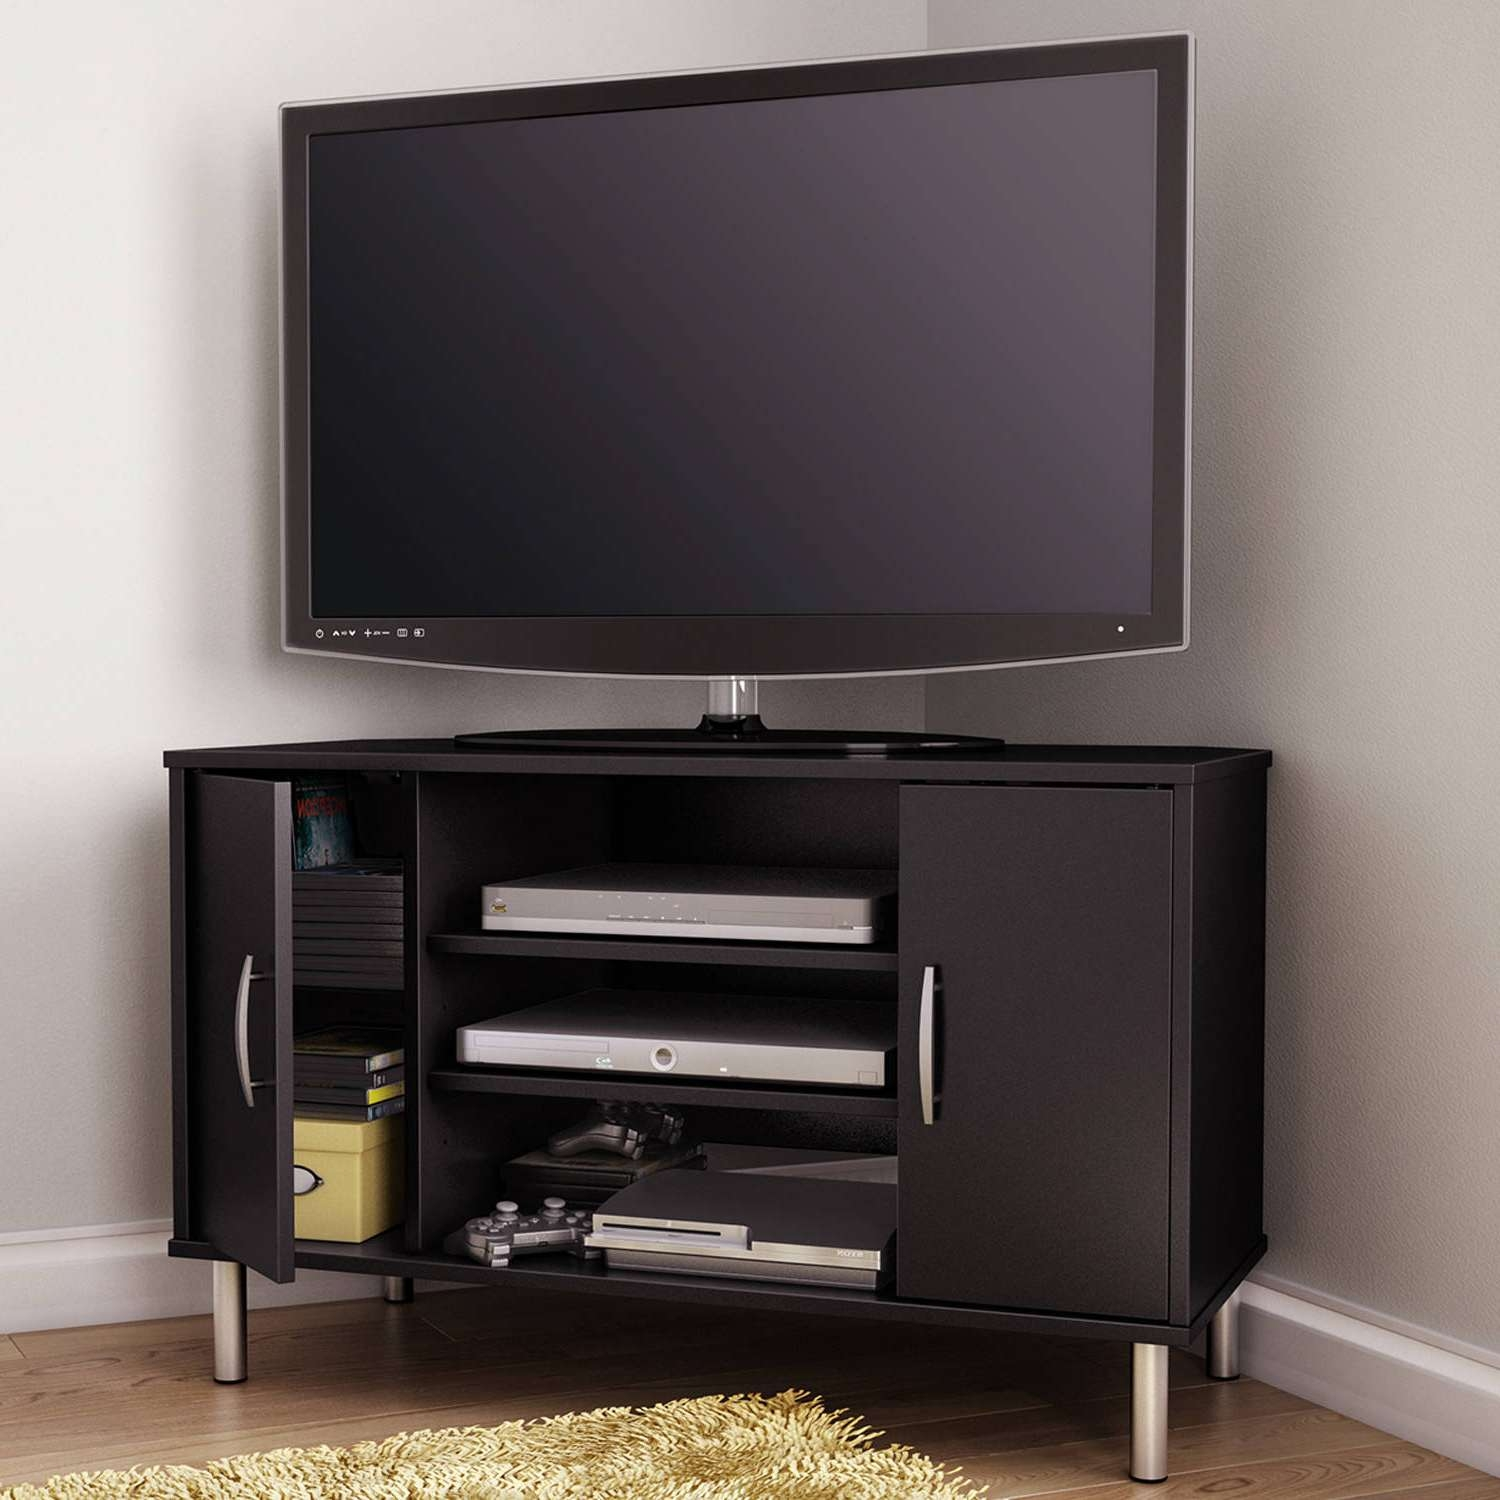 Storage Cabinets Ideas : Corner Tv Cabinet Black Choosing The With Regard To Black Corner Tv Cabinets With Glass Doors (View 10 of 20)